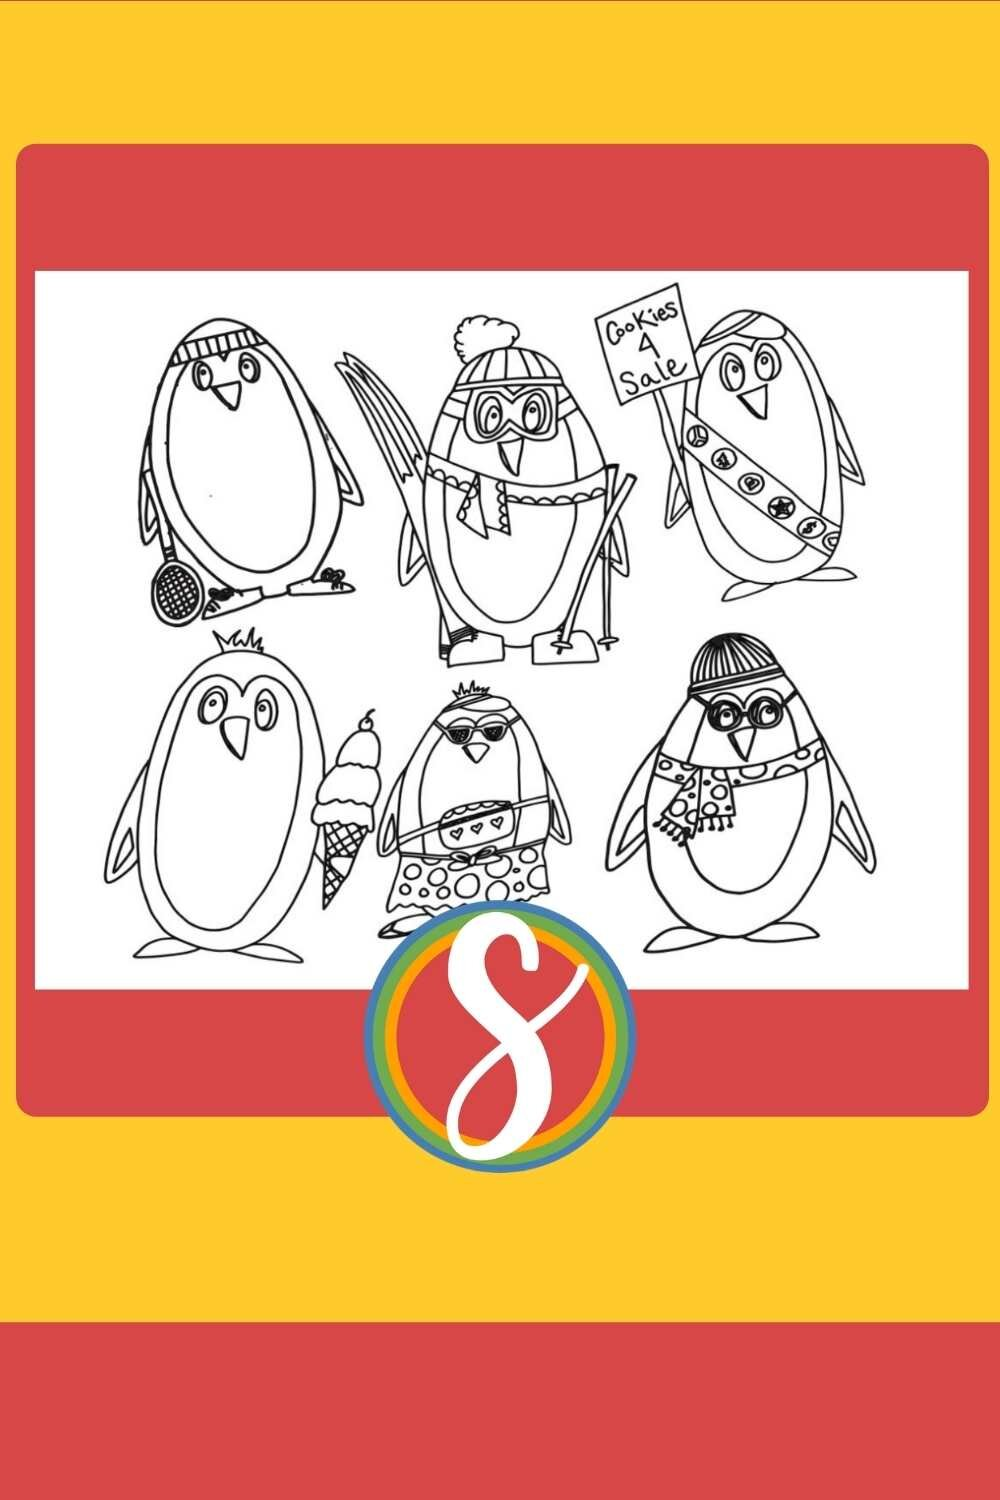 Free Penguin Coloring Page - A penguin family of six, print and color free from Stevie Doodles